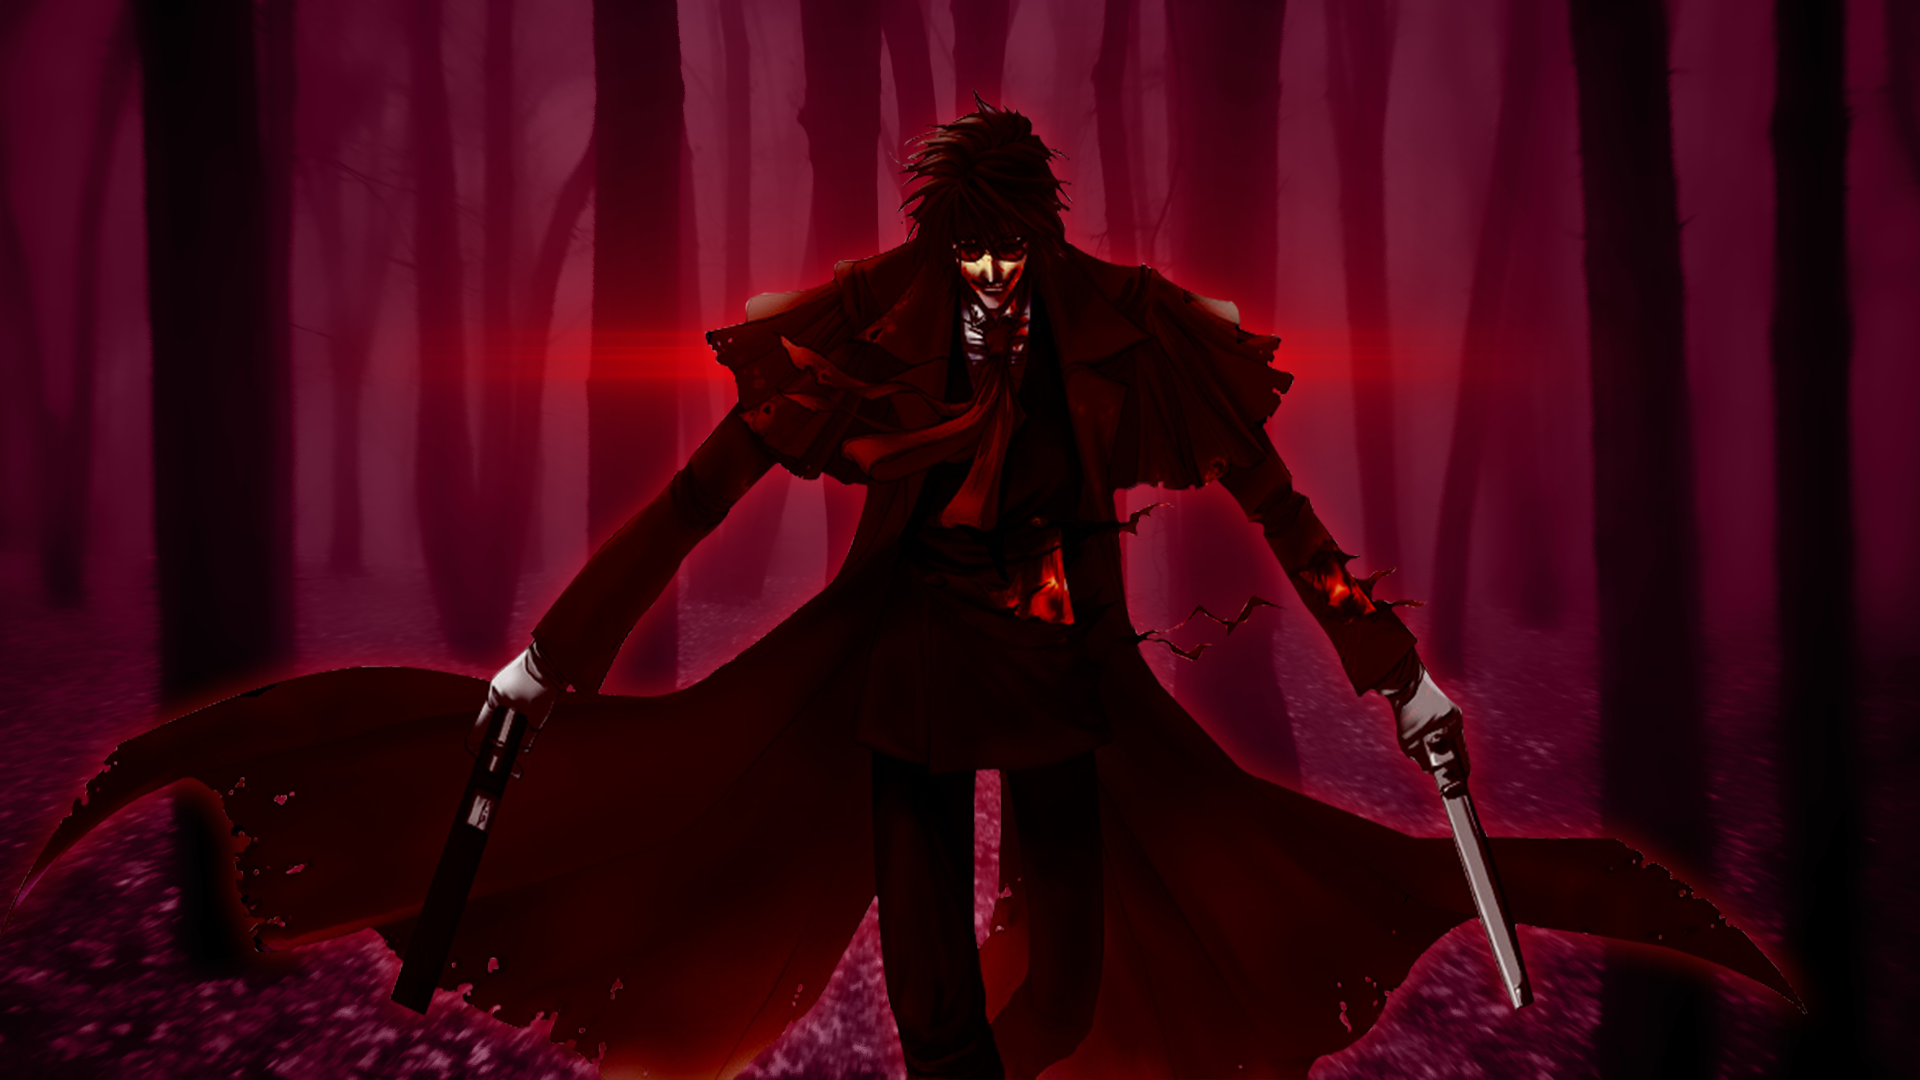 Alucard hellsing ultimate hd wallpaper background - Anime hellsing wallpaper ...